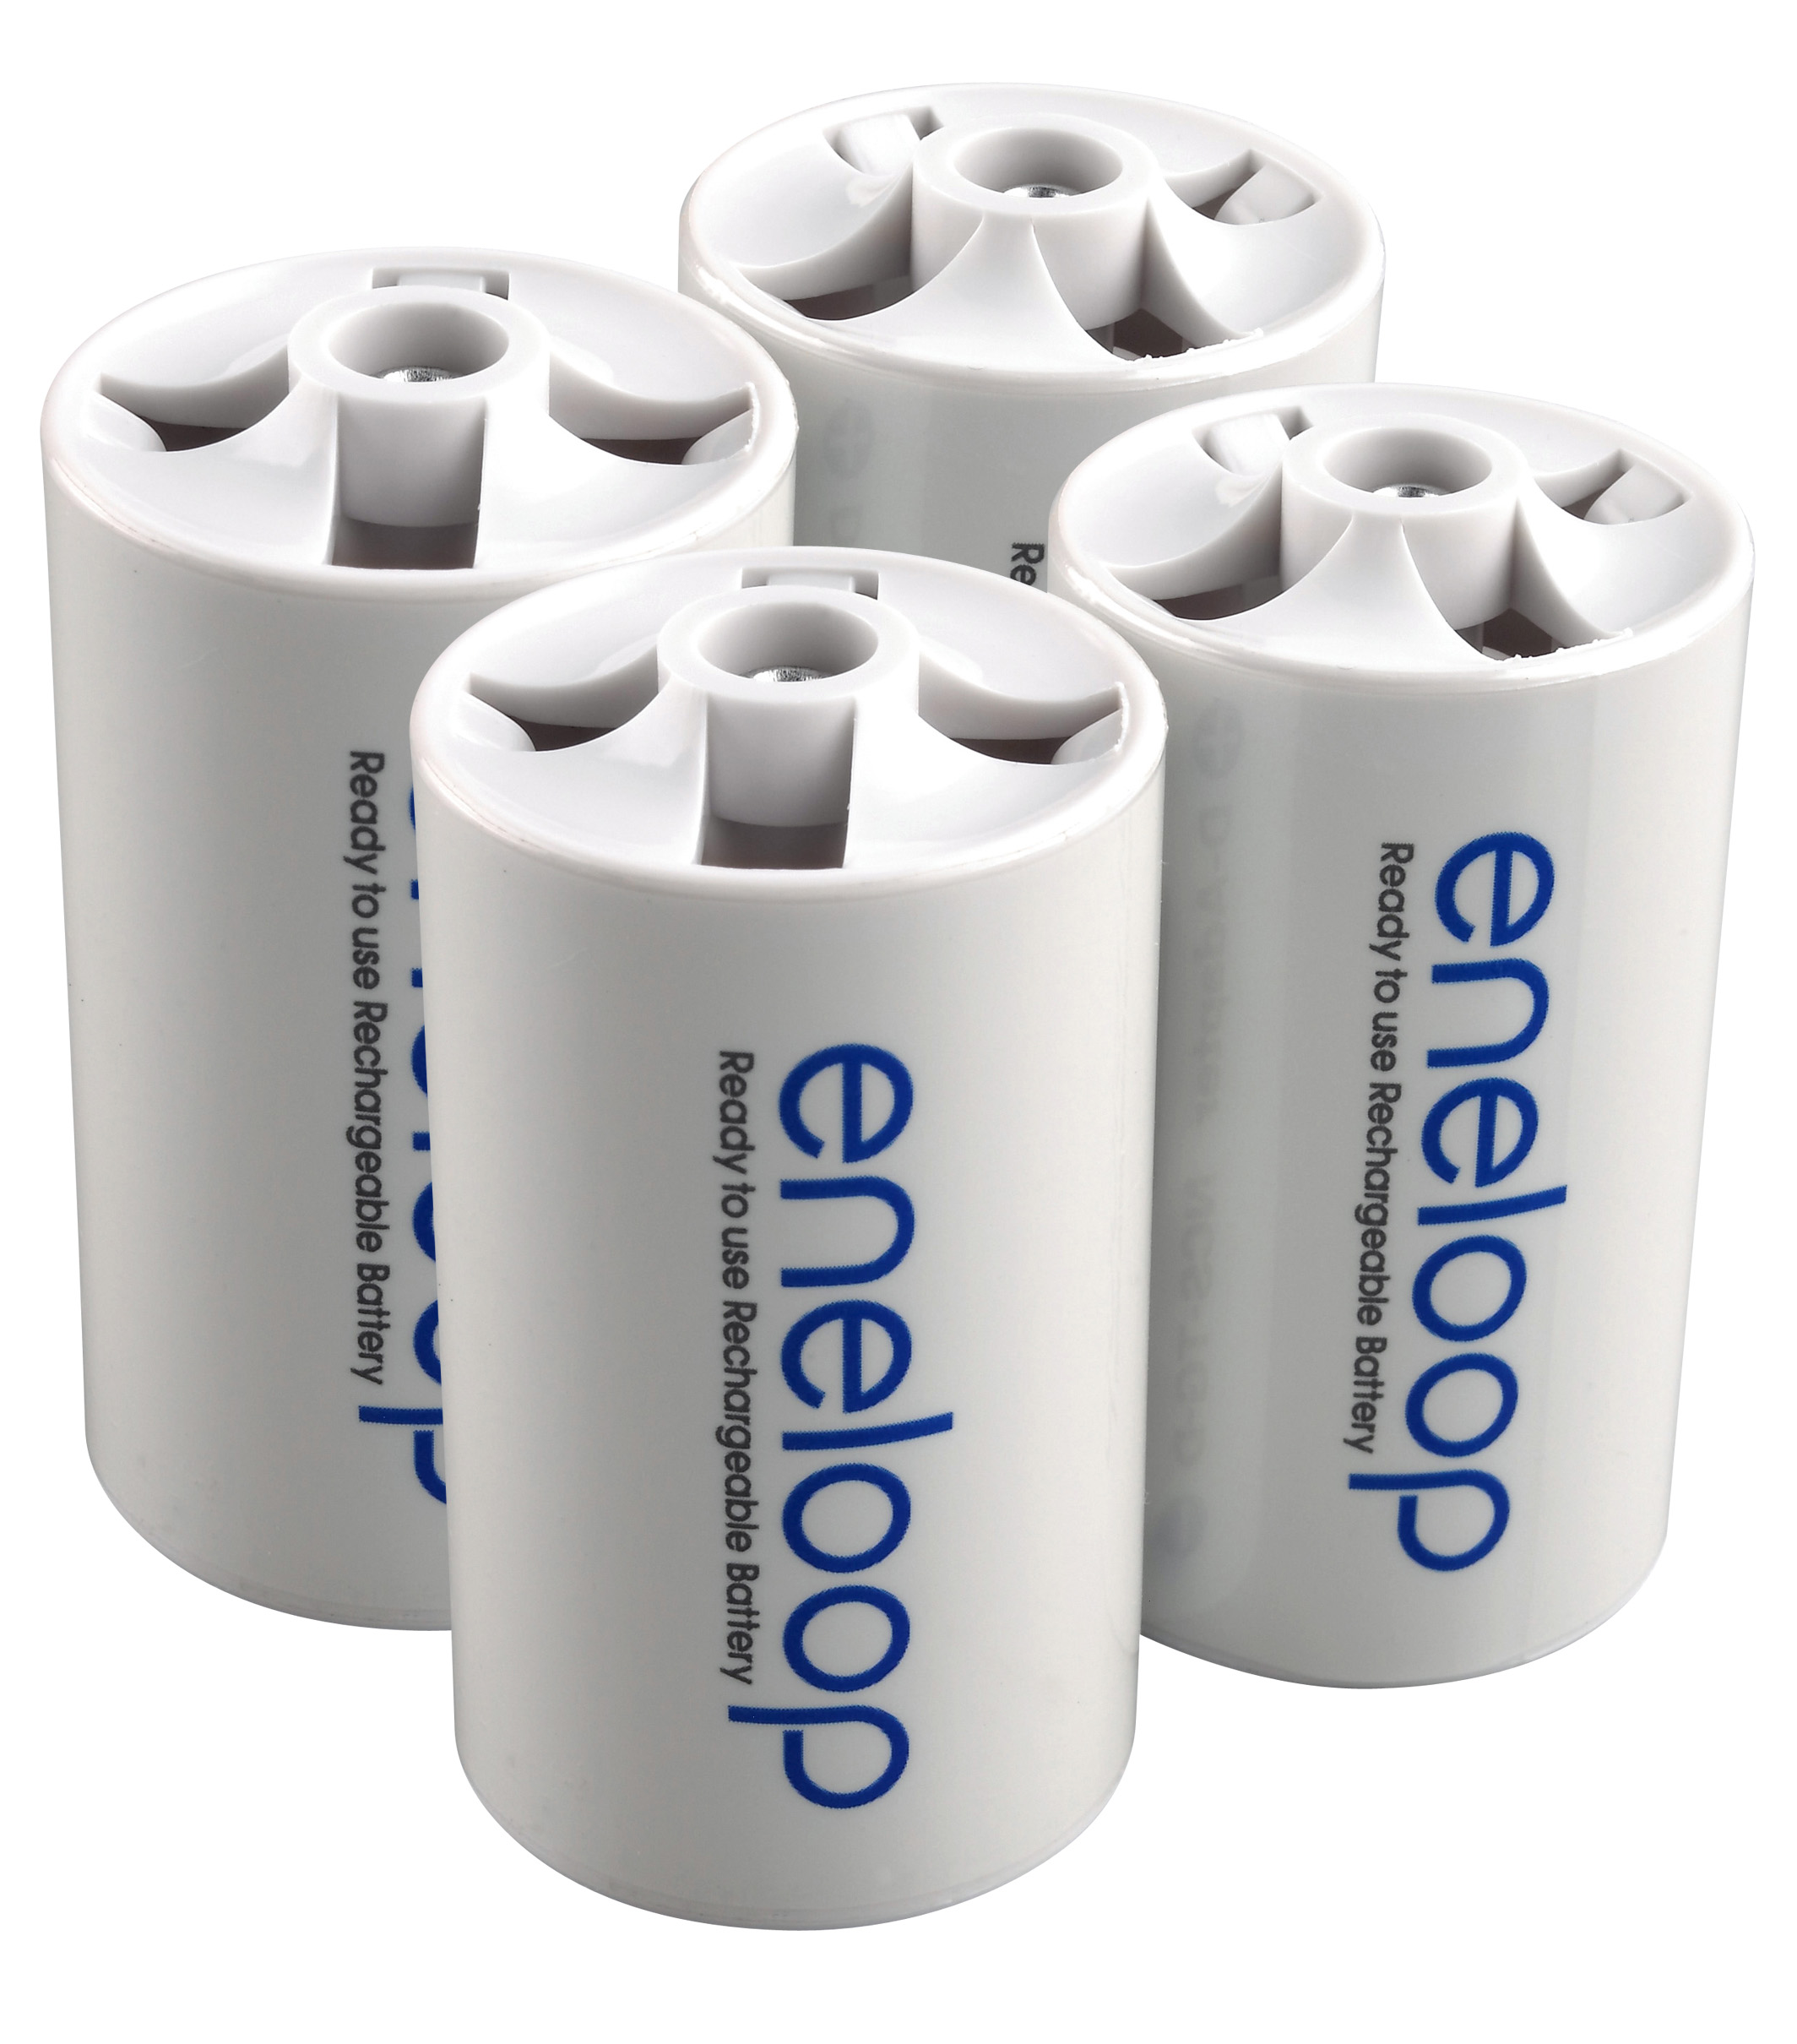 Eneloop d spacer 4pack ready to use rechargeable battery